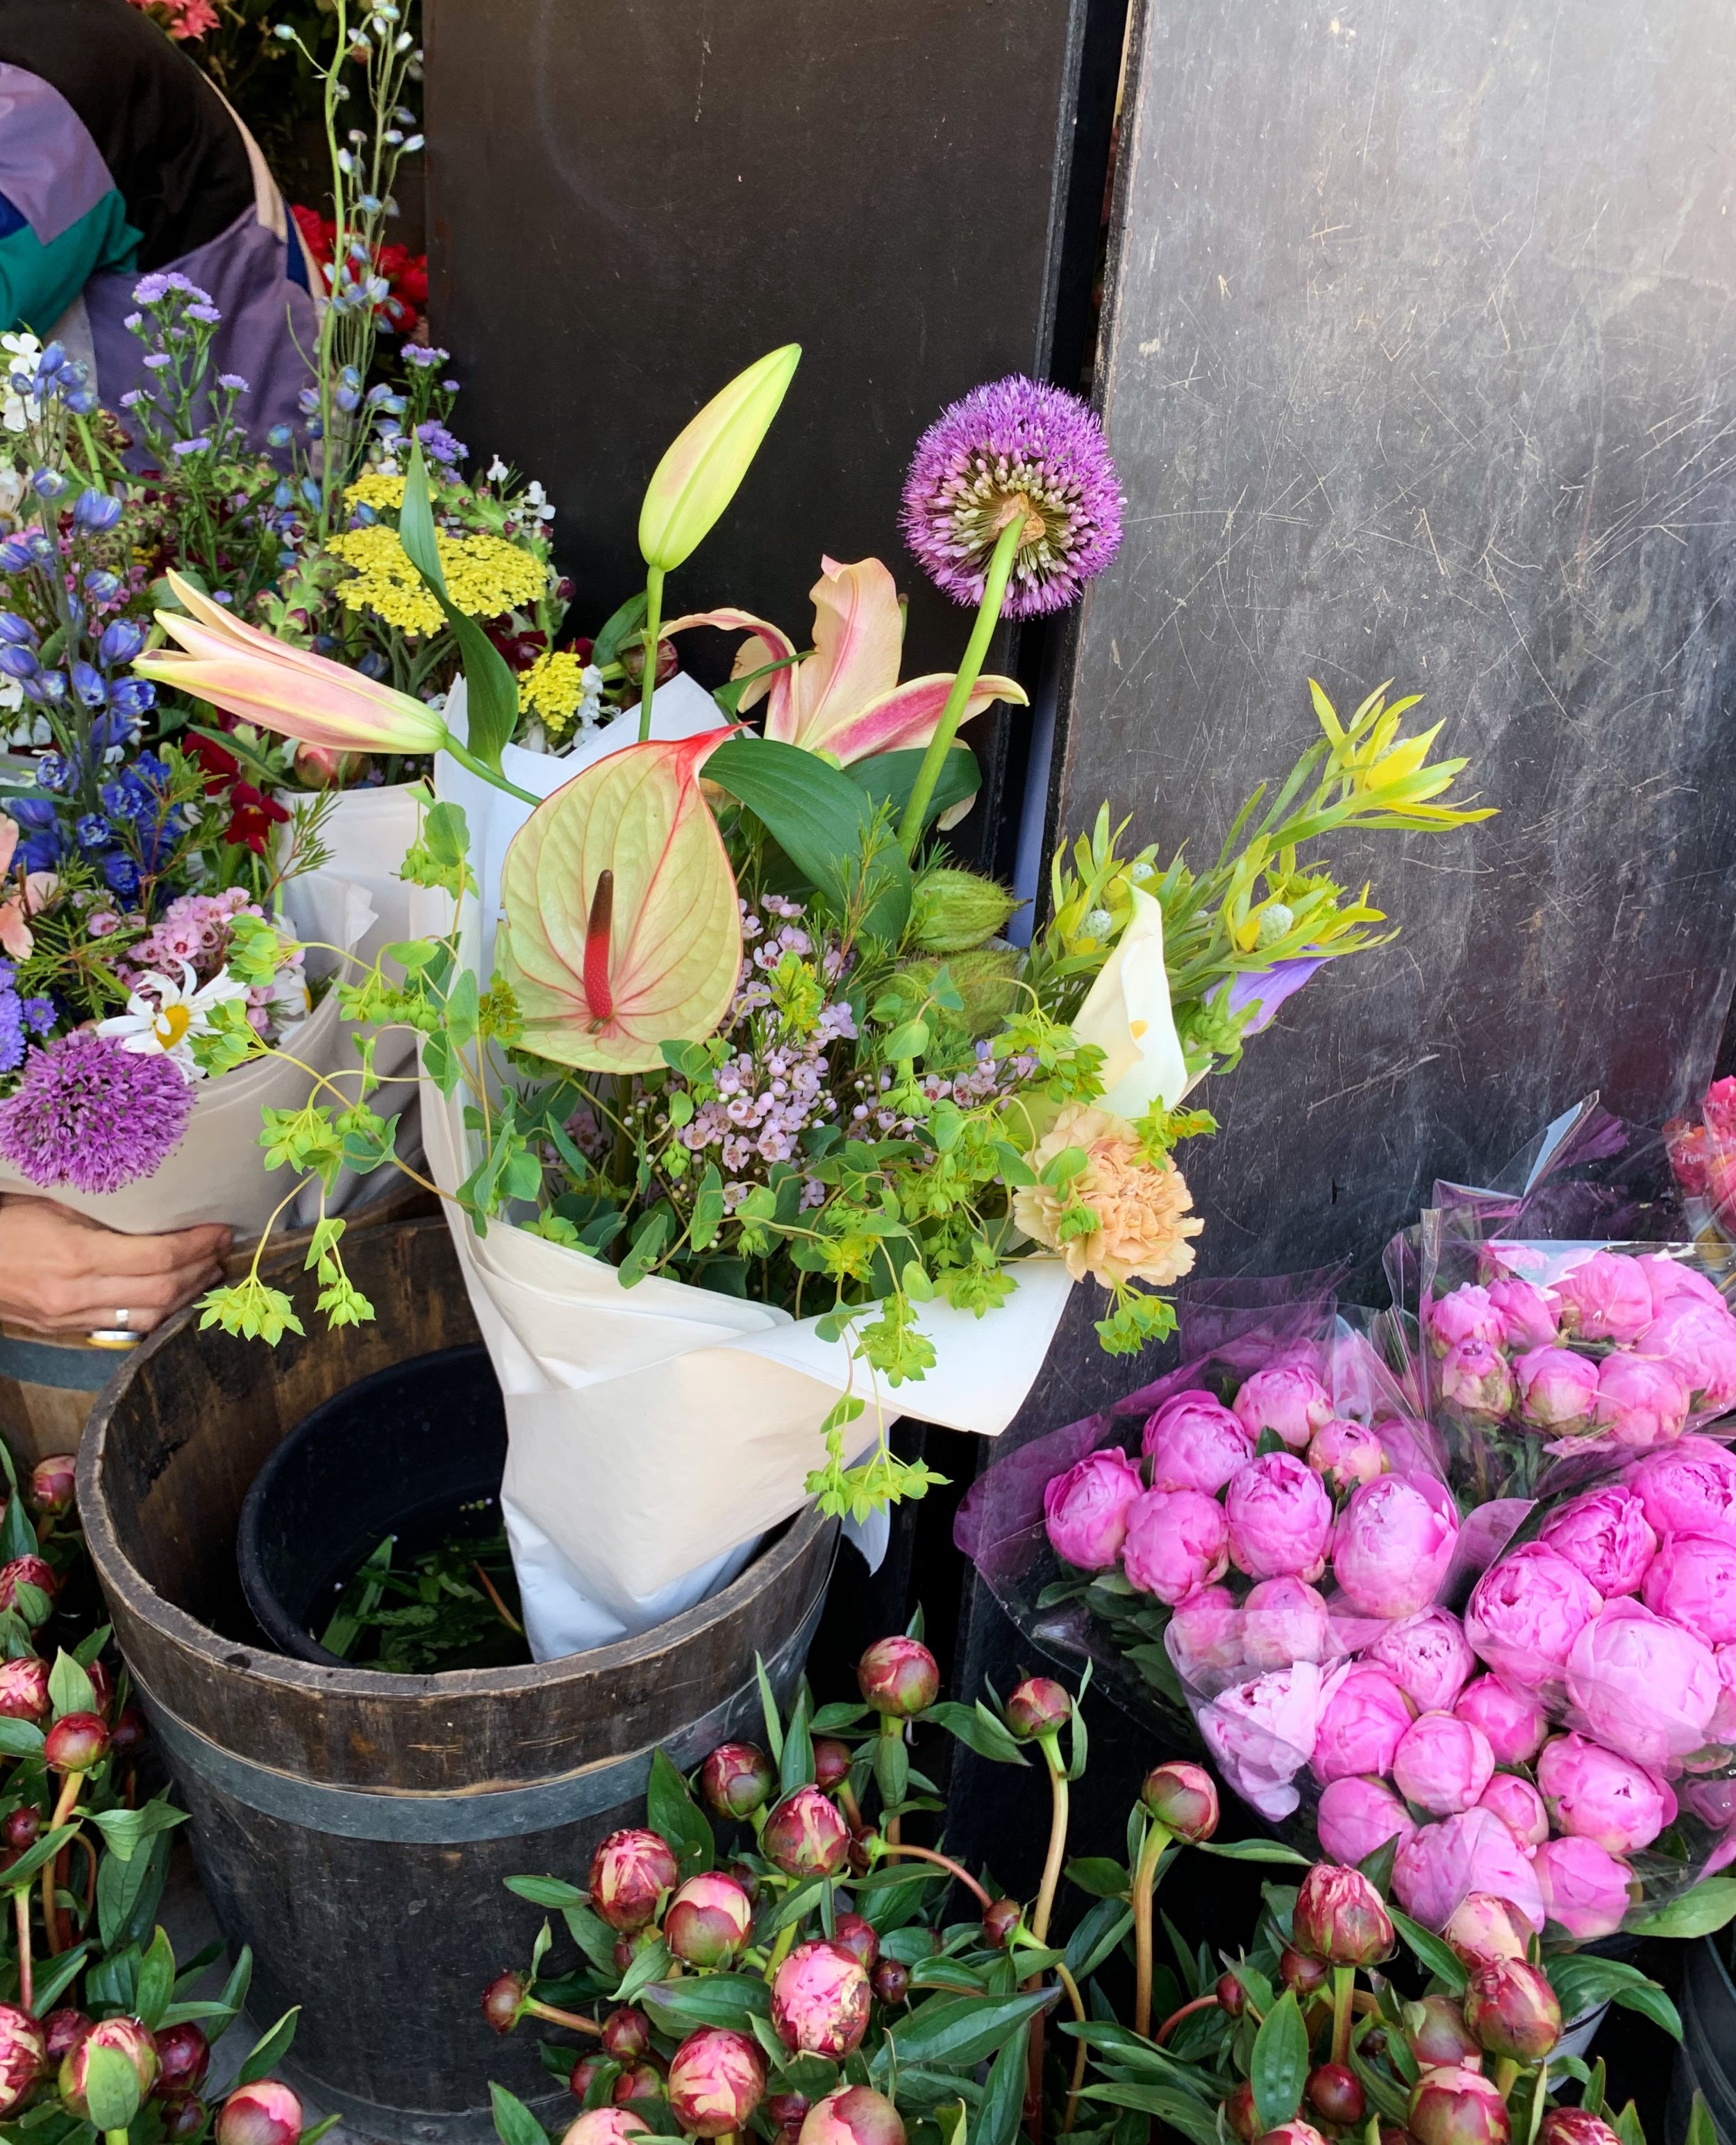 Flowers from a gorgeous market where Isabel and her friend stopped for refreshments.